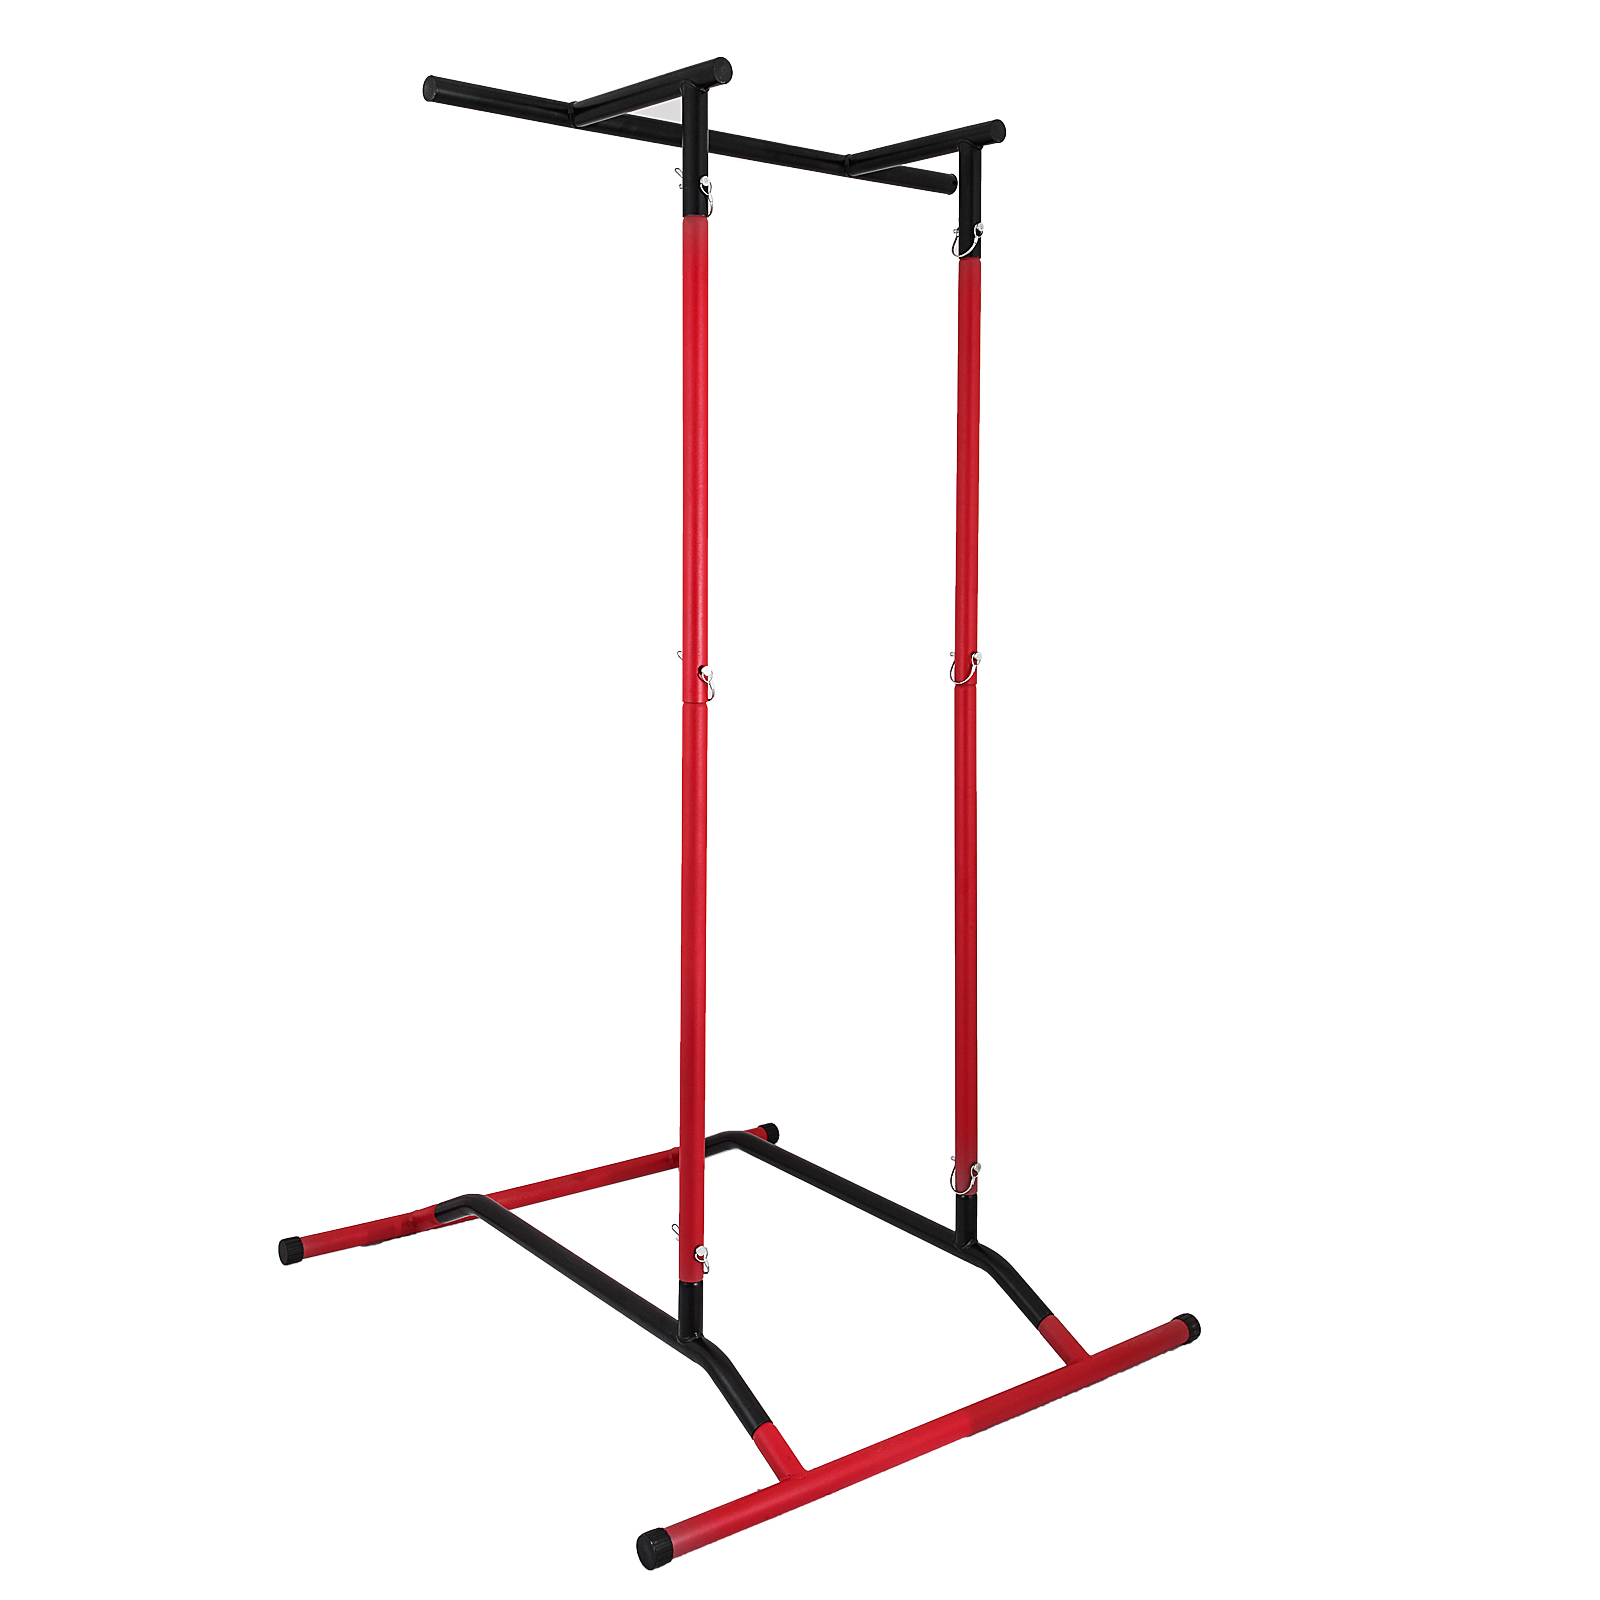 Portable-Power-Tower-for-Home-Gym-Workout-With-Dip-Station-And-Chin-Pull-Up-Bar thumbnail 29